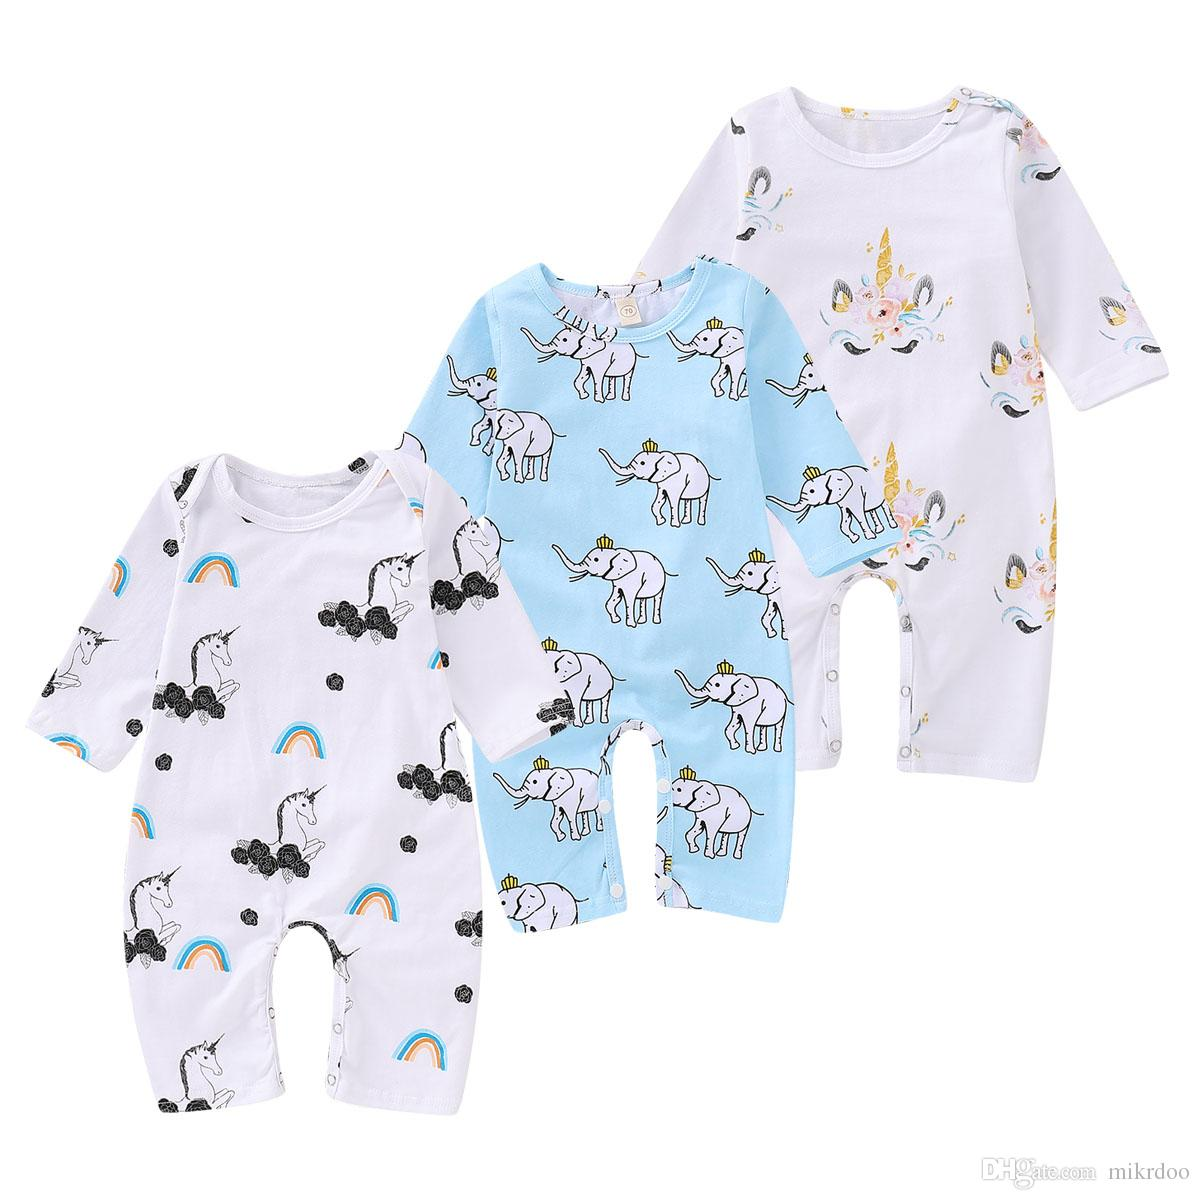 ddc63505d17b 2019 Mikrdoo Toddler Newborn Baby Boys Girls Romper Clothes Cartoon Unicorn  Elephants Print Jumpsuit Clothing Playsuit Outfit From Mikrdoo